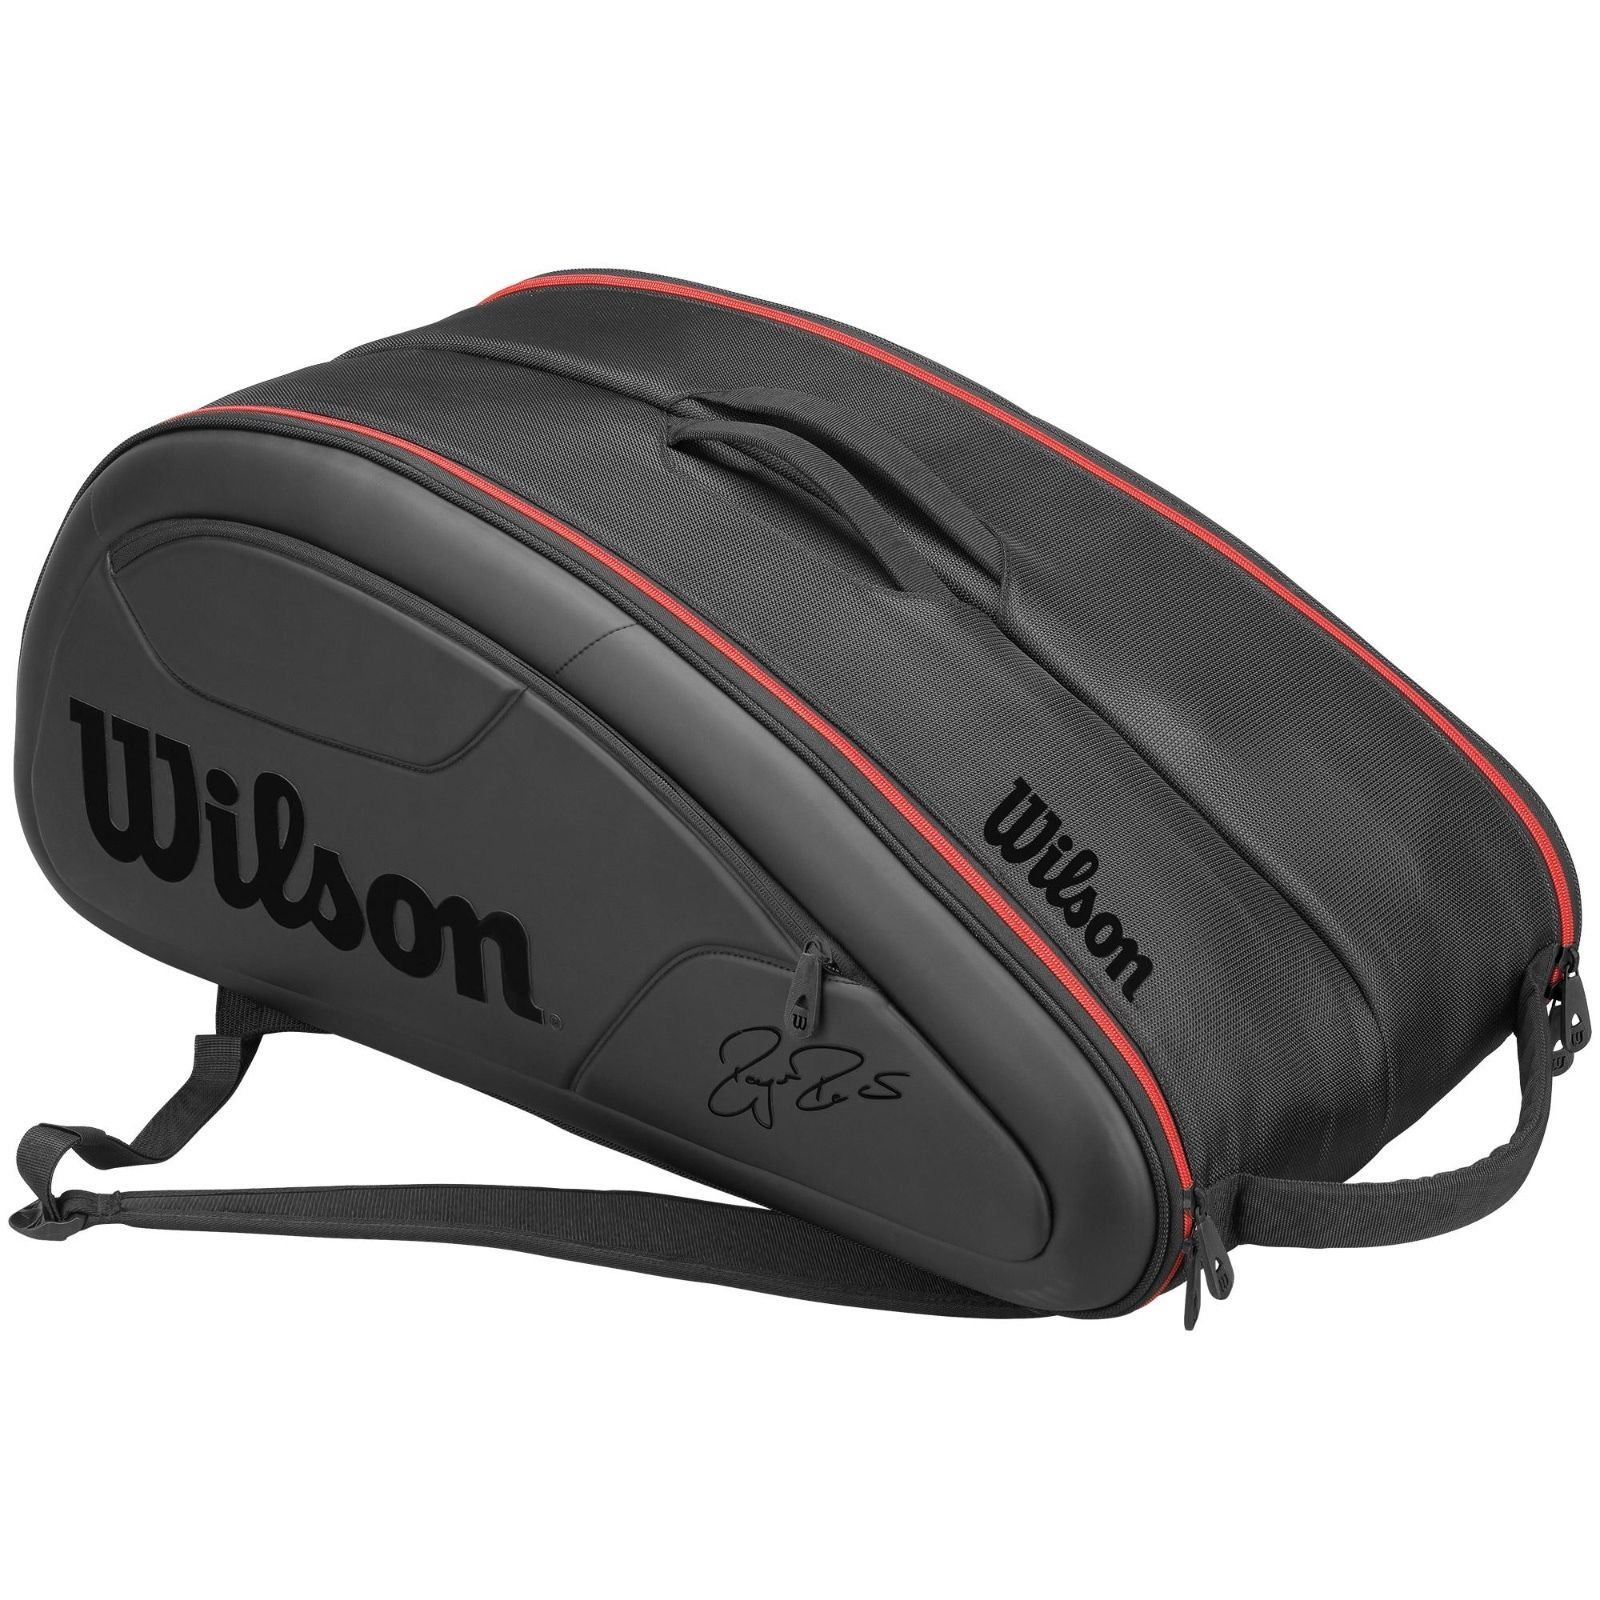 Wilson federer dna 12 racket black bag 2017, View